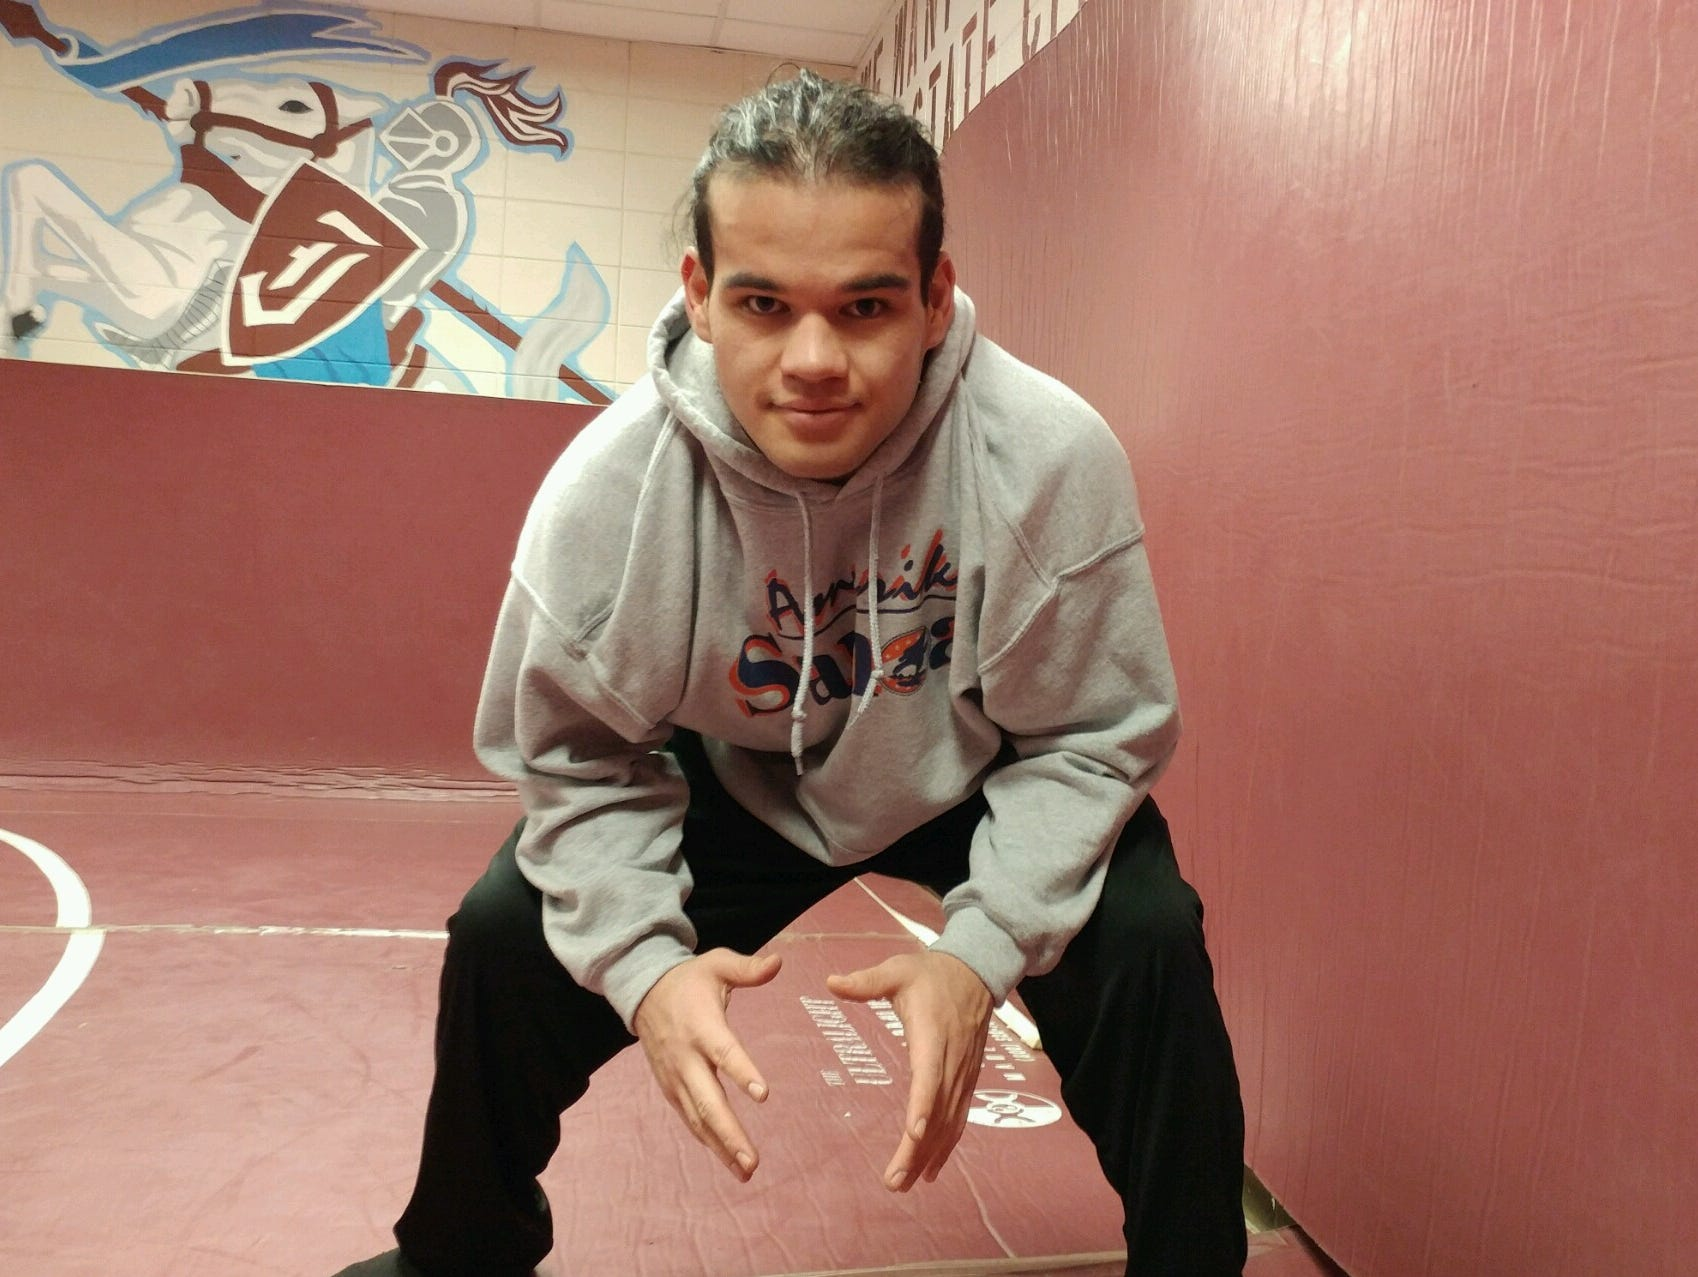 Jeffersontown High School senior wrestler Lawrence Malala is ranked No. 2 in the state in the 220-pound weight class.